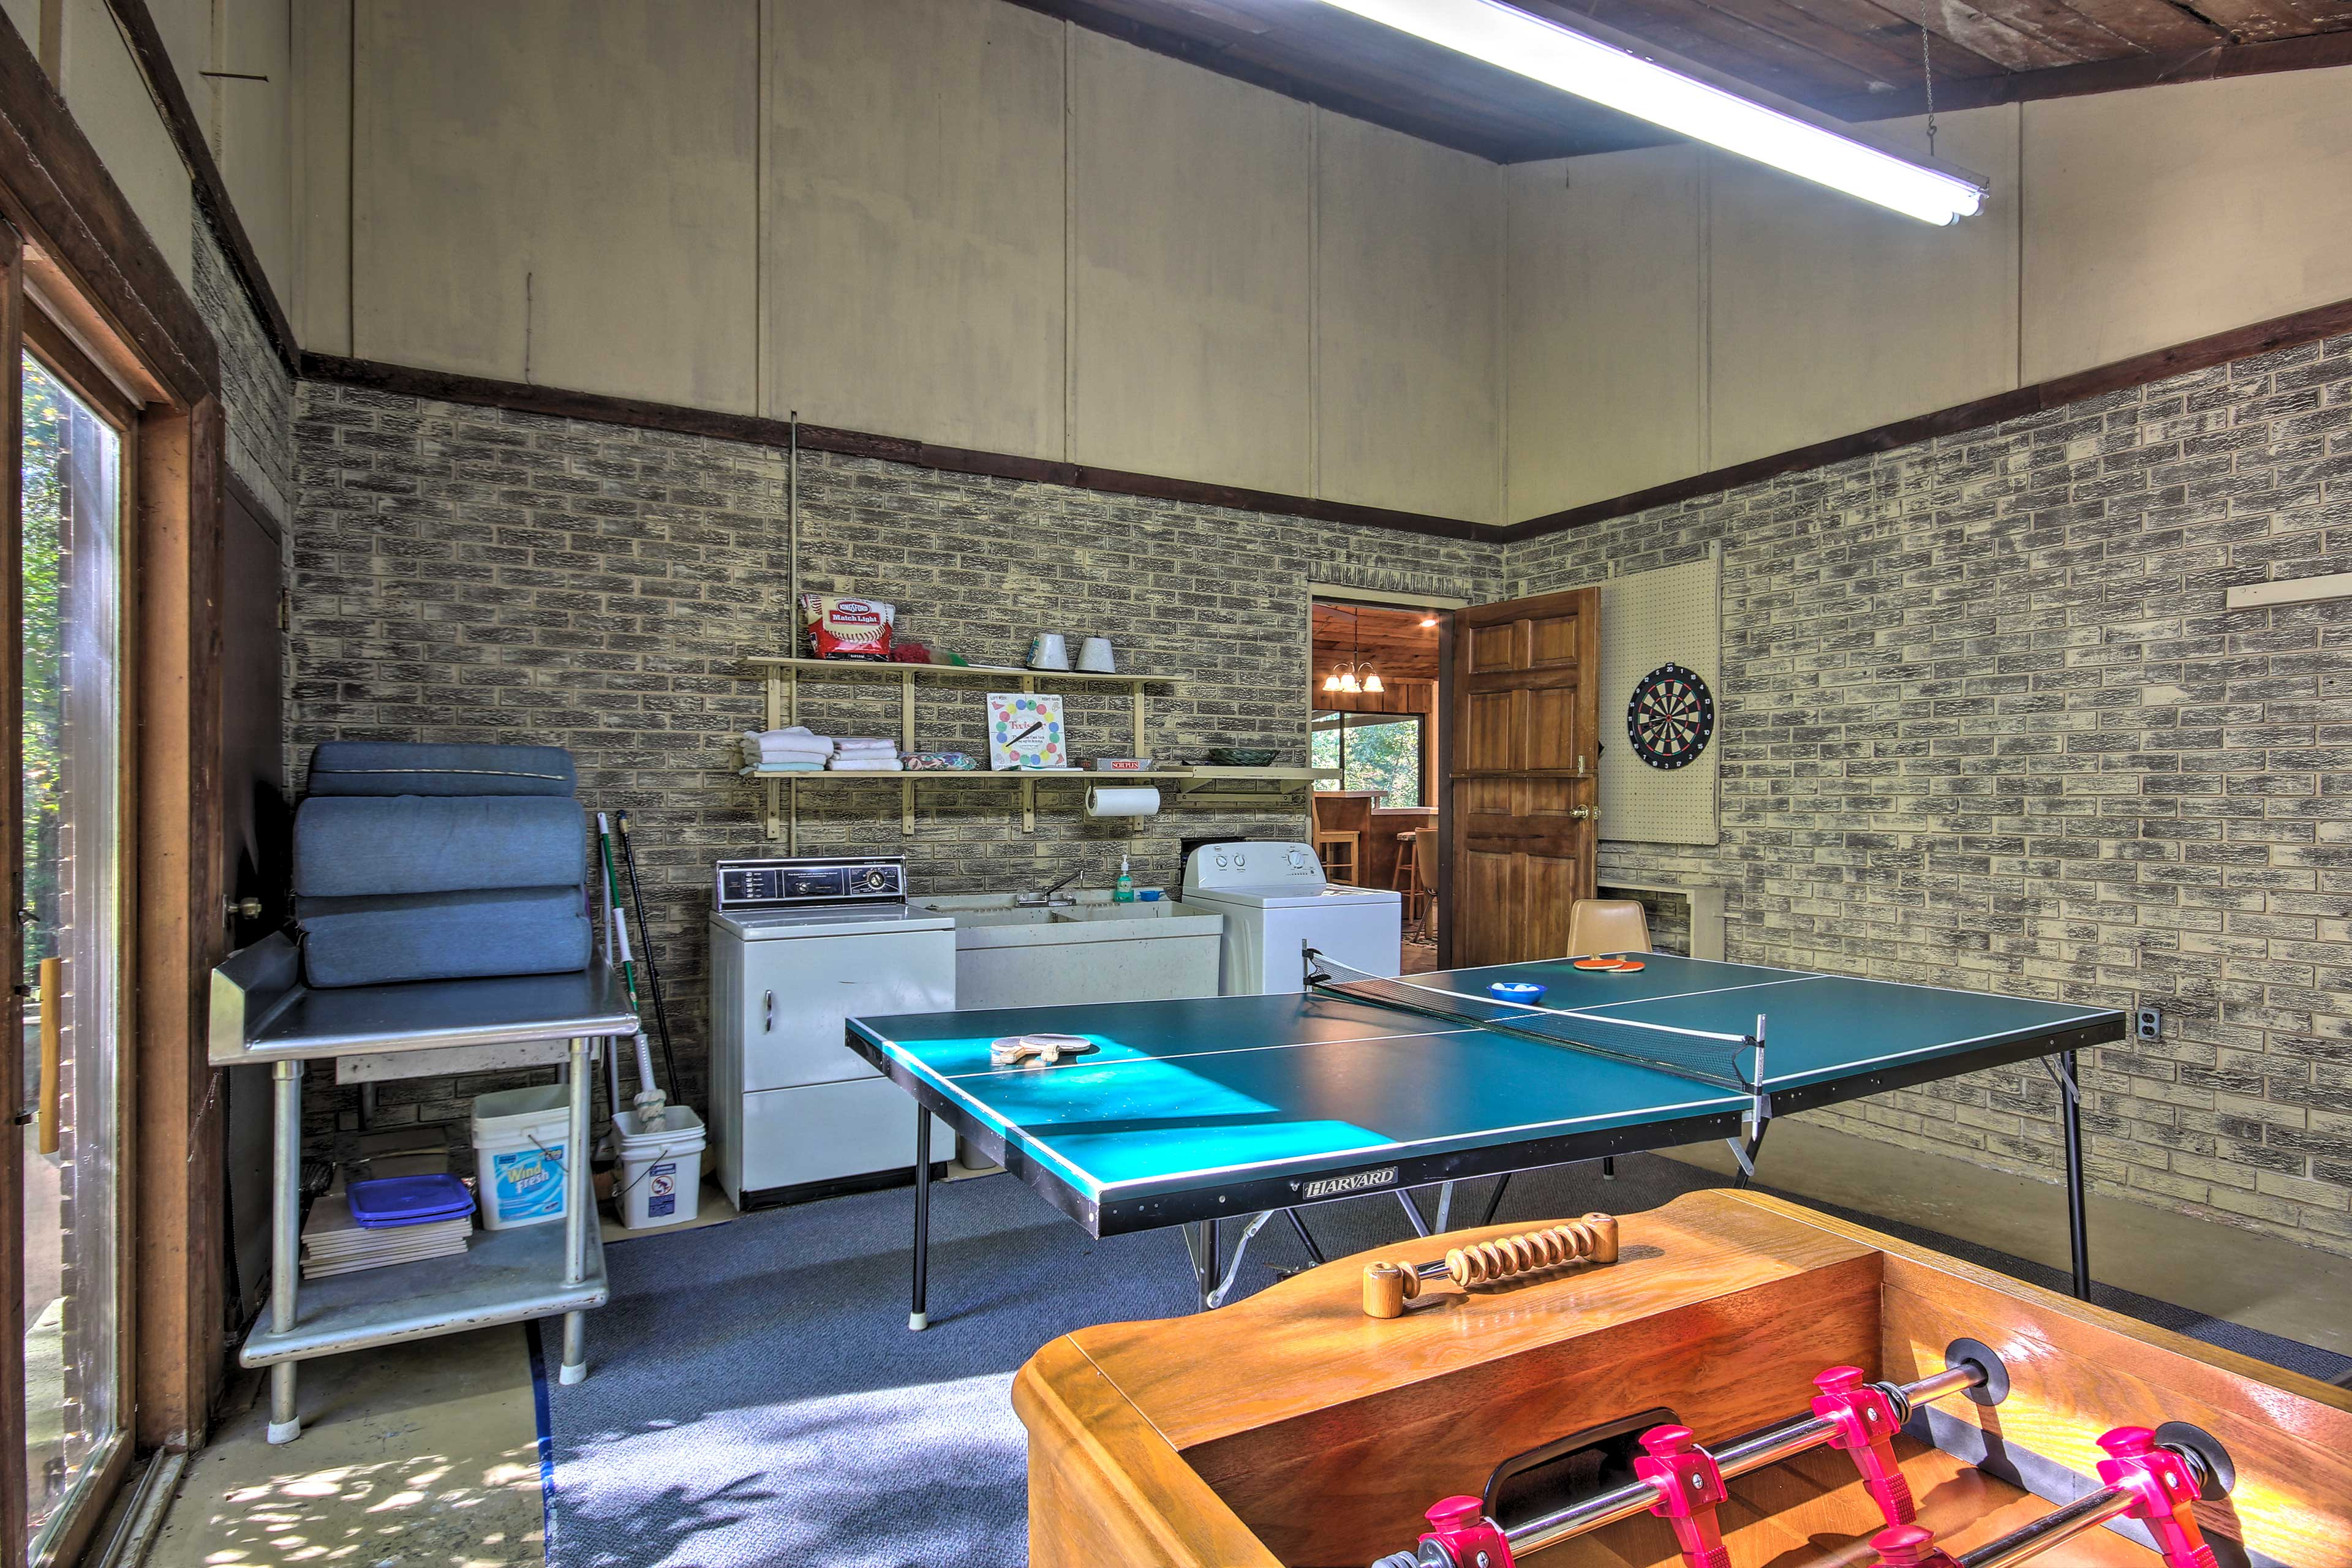 Play an exciting game of ping pong or Foosball in the game room.